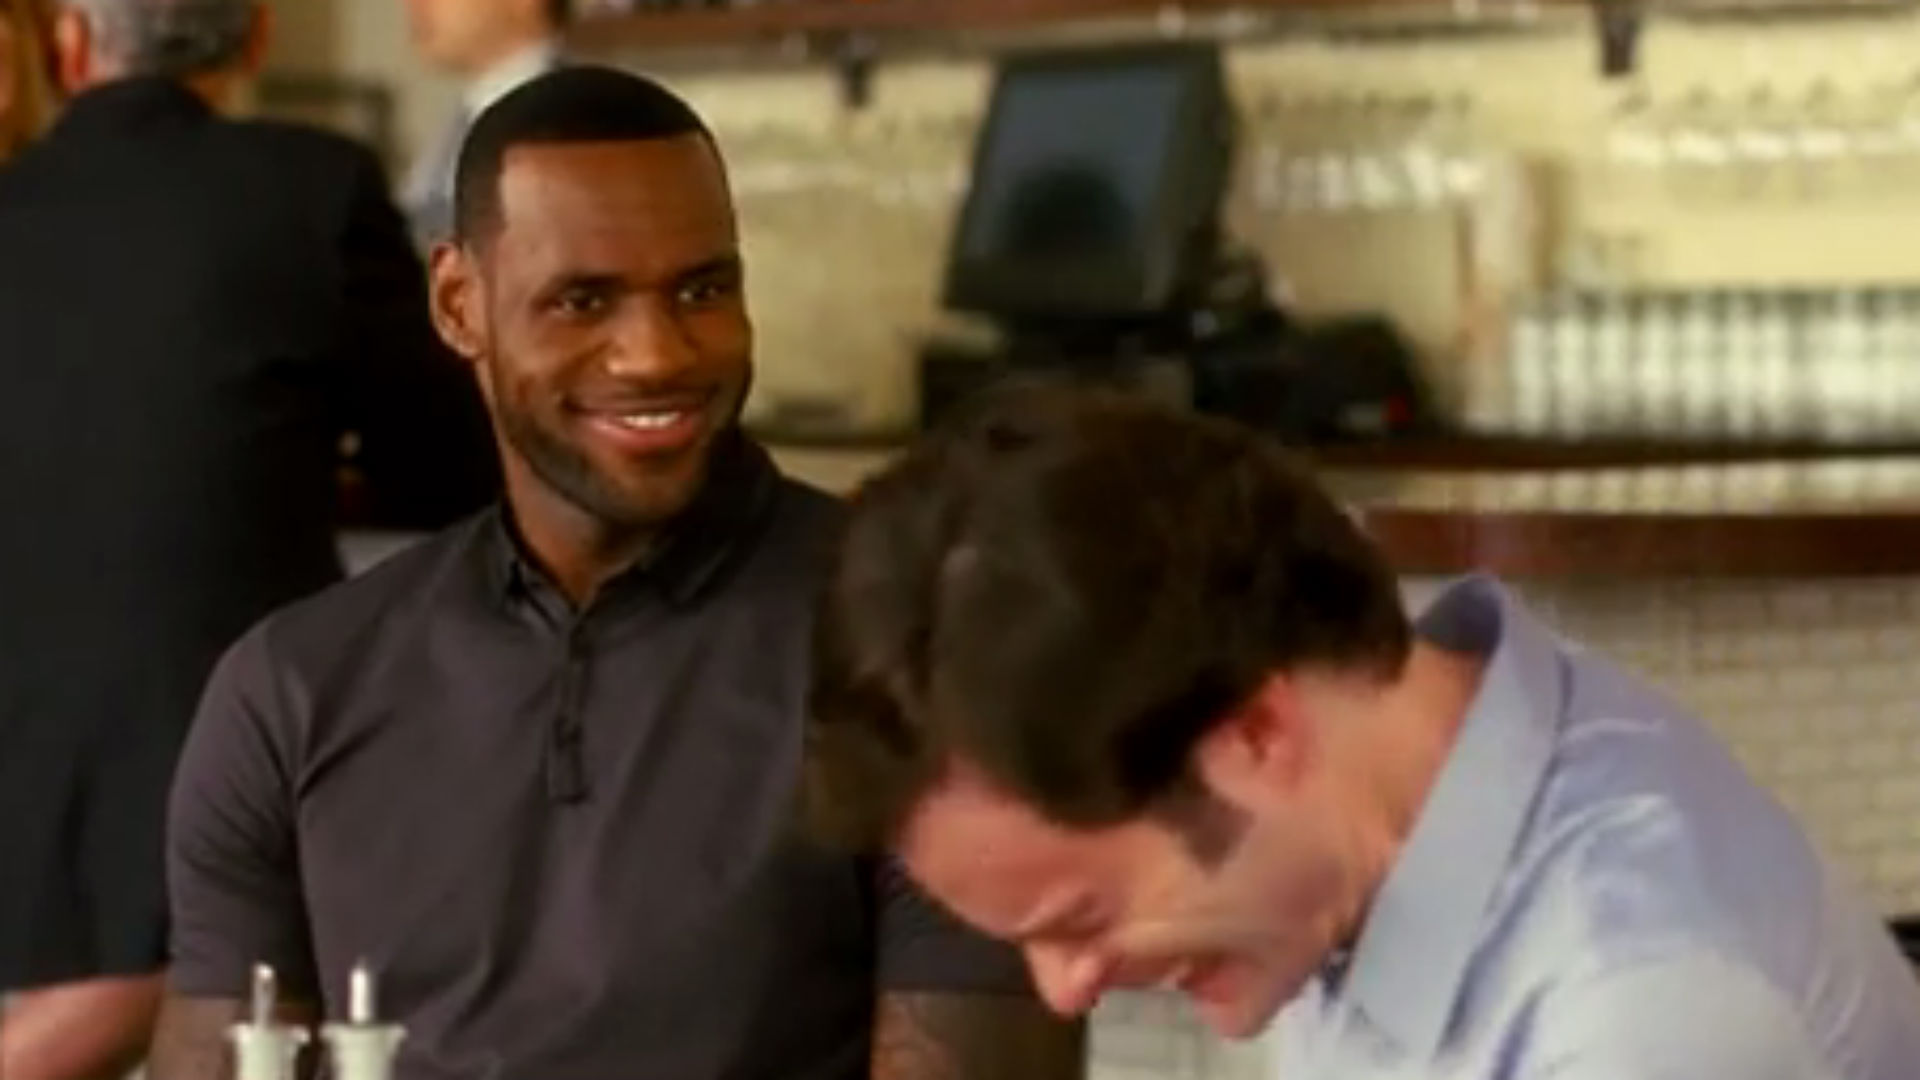 LeBron James cracks up in 'Trainwreck' gag reel